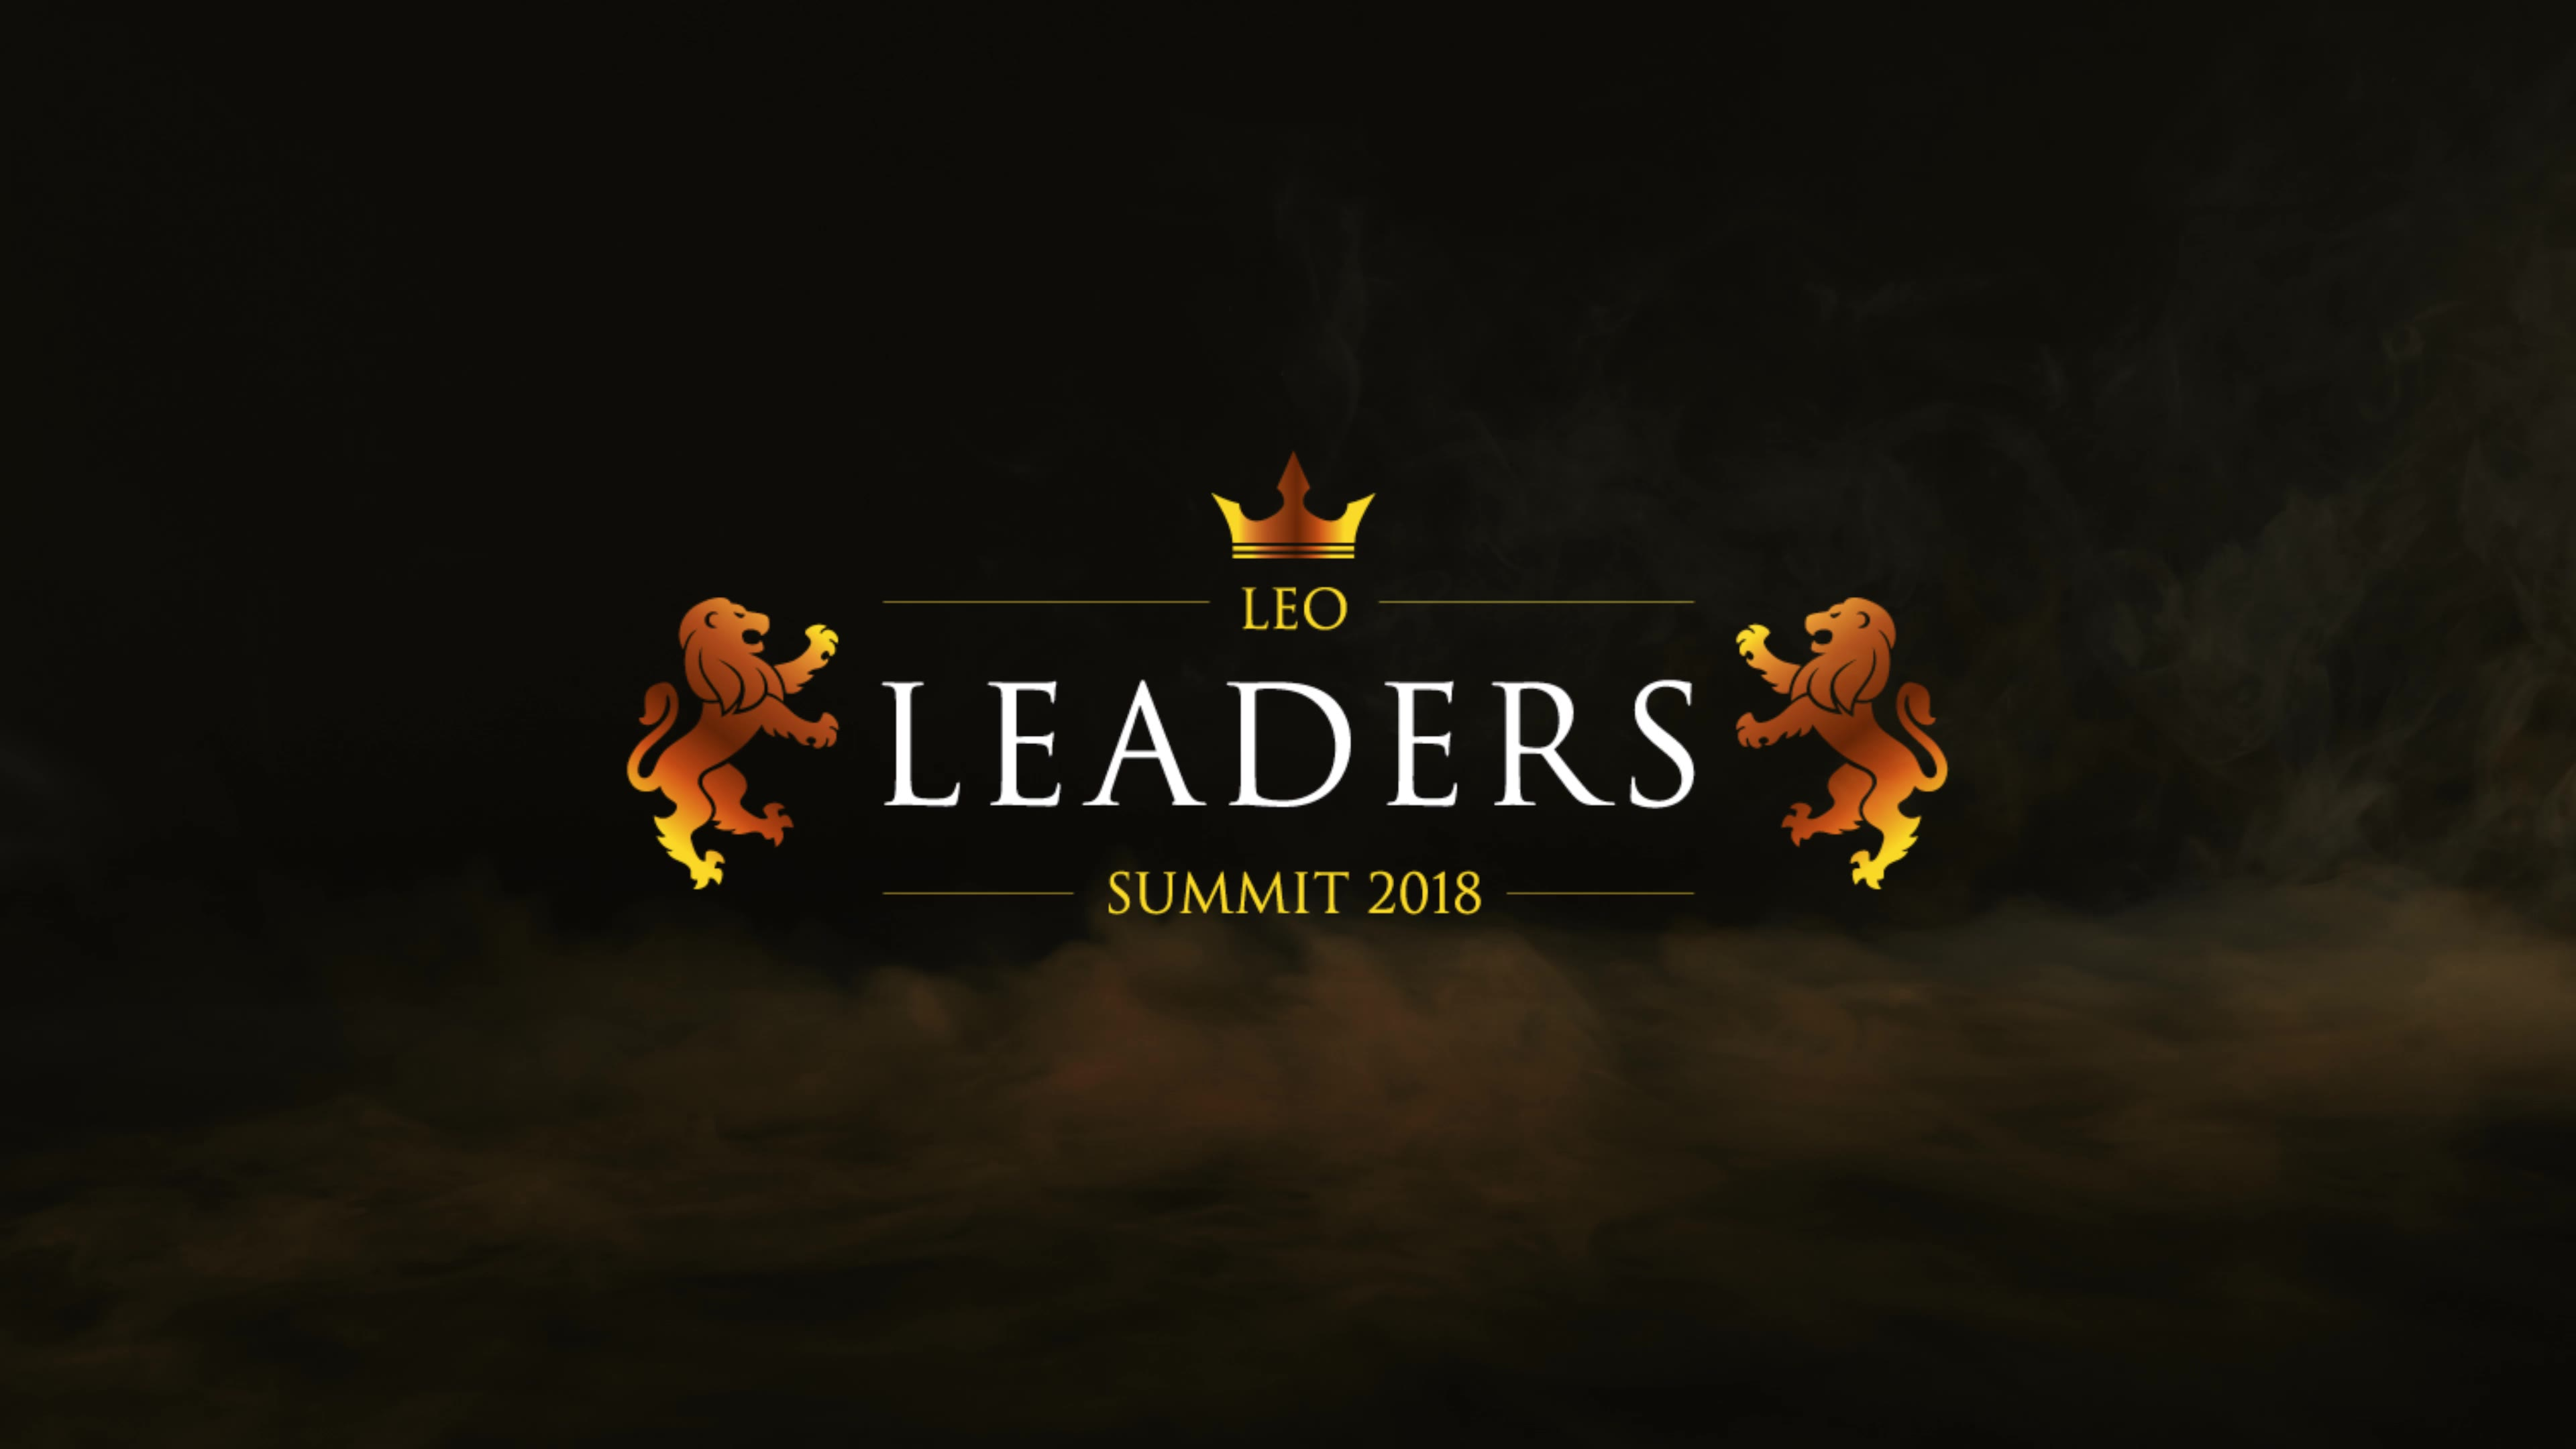 LEO Leadership Summit 2018